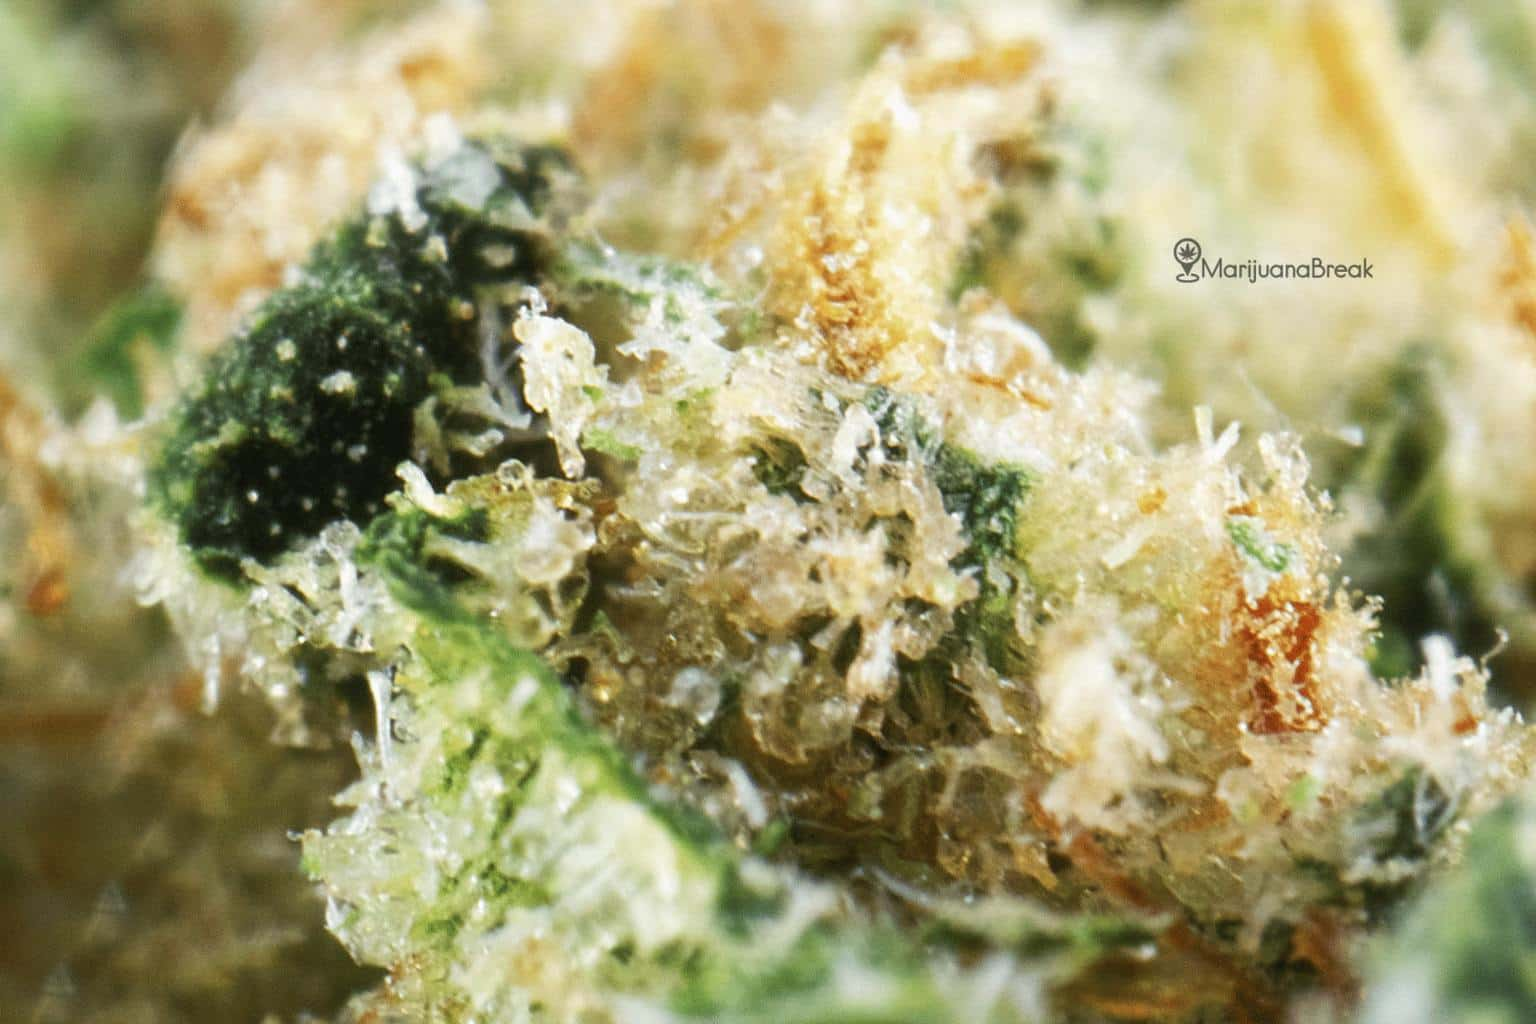 Chemdawg Aroma, Flavor, Appearance